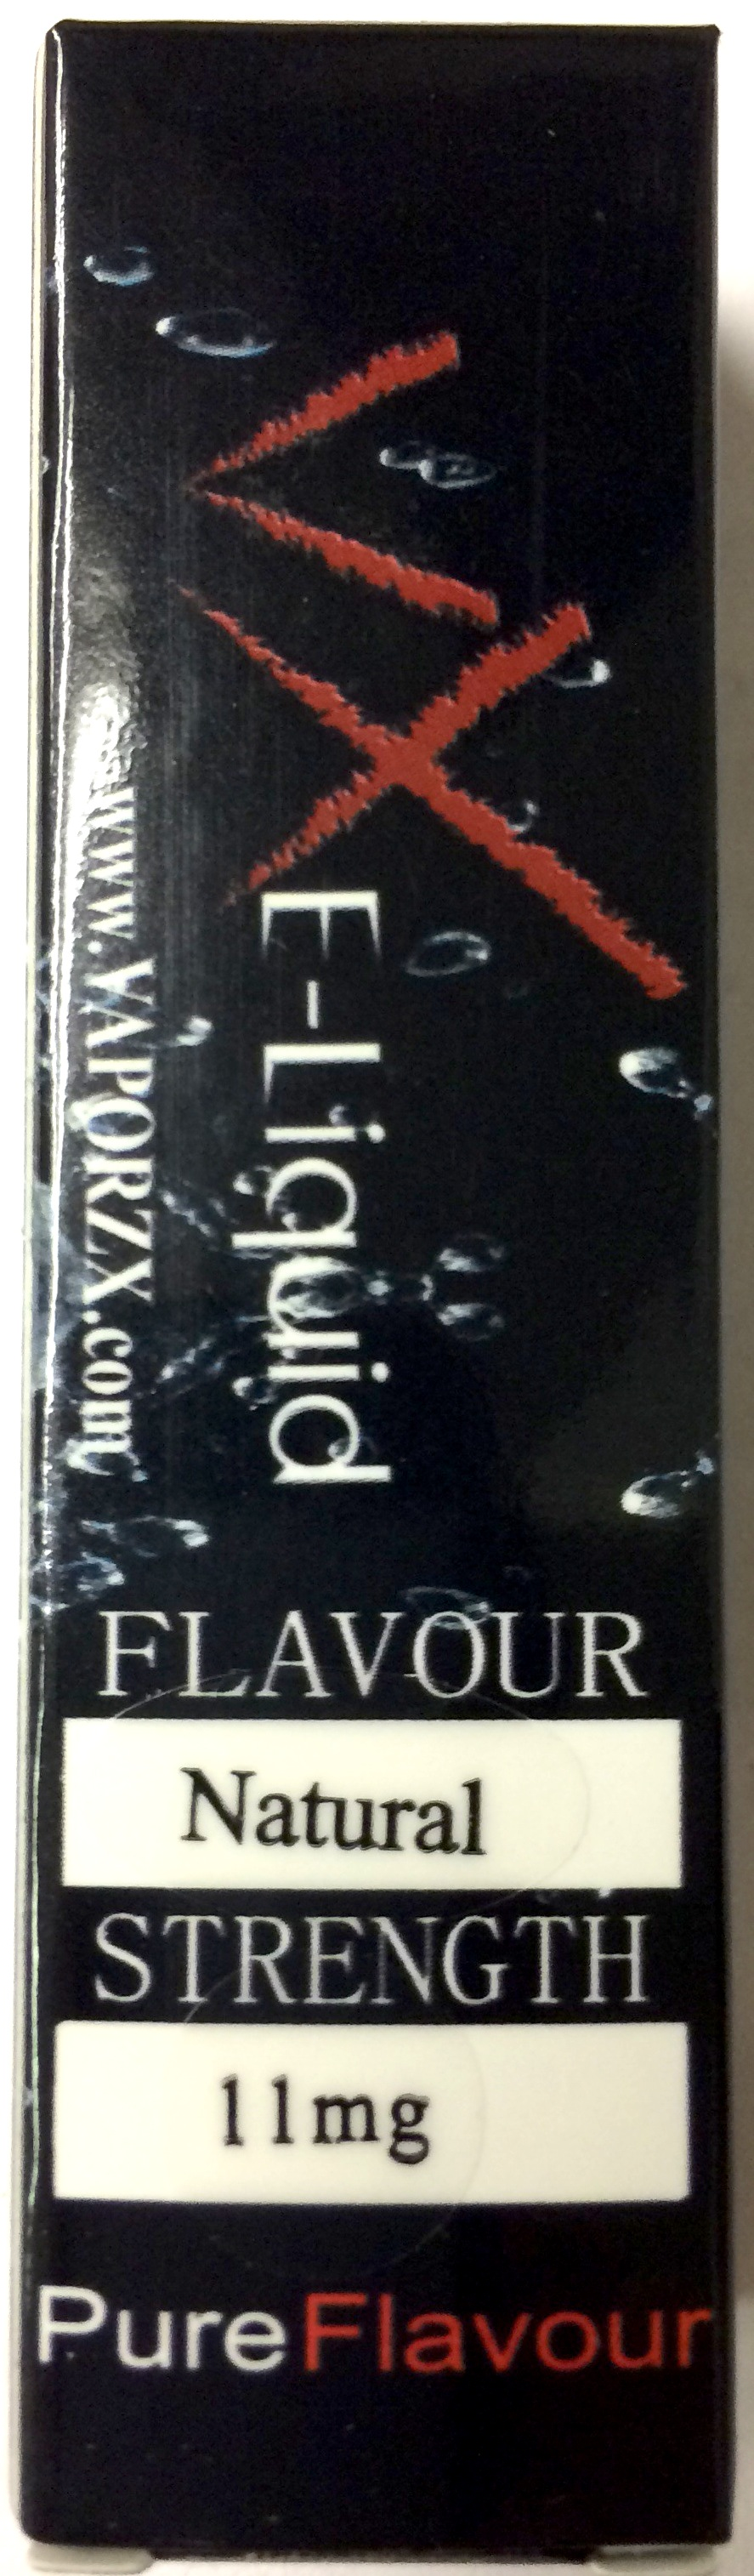 E-LIQUID HOOKAH NATURAL 11MG EACH